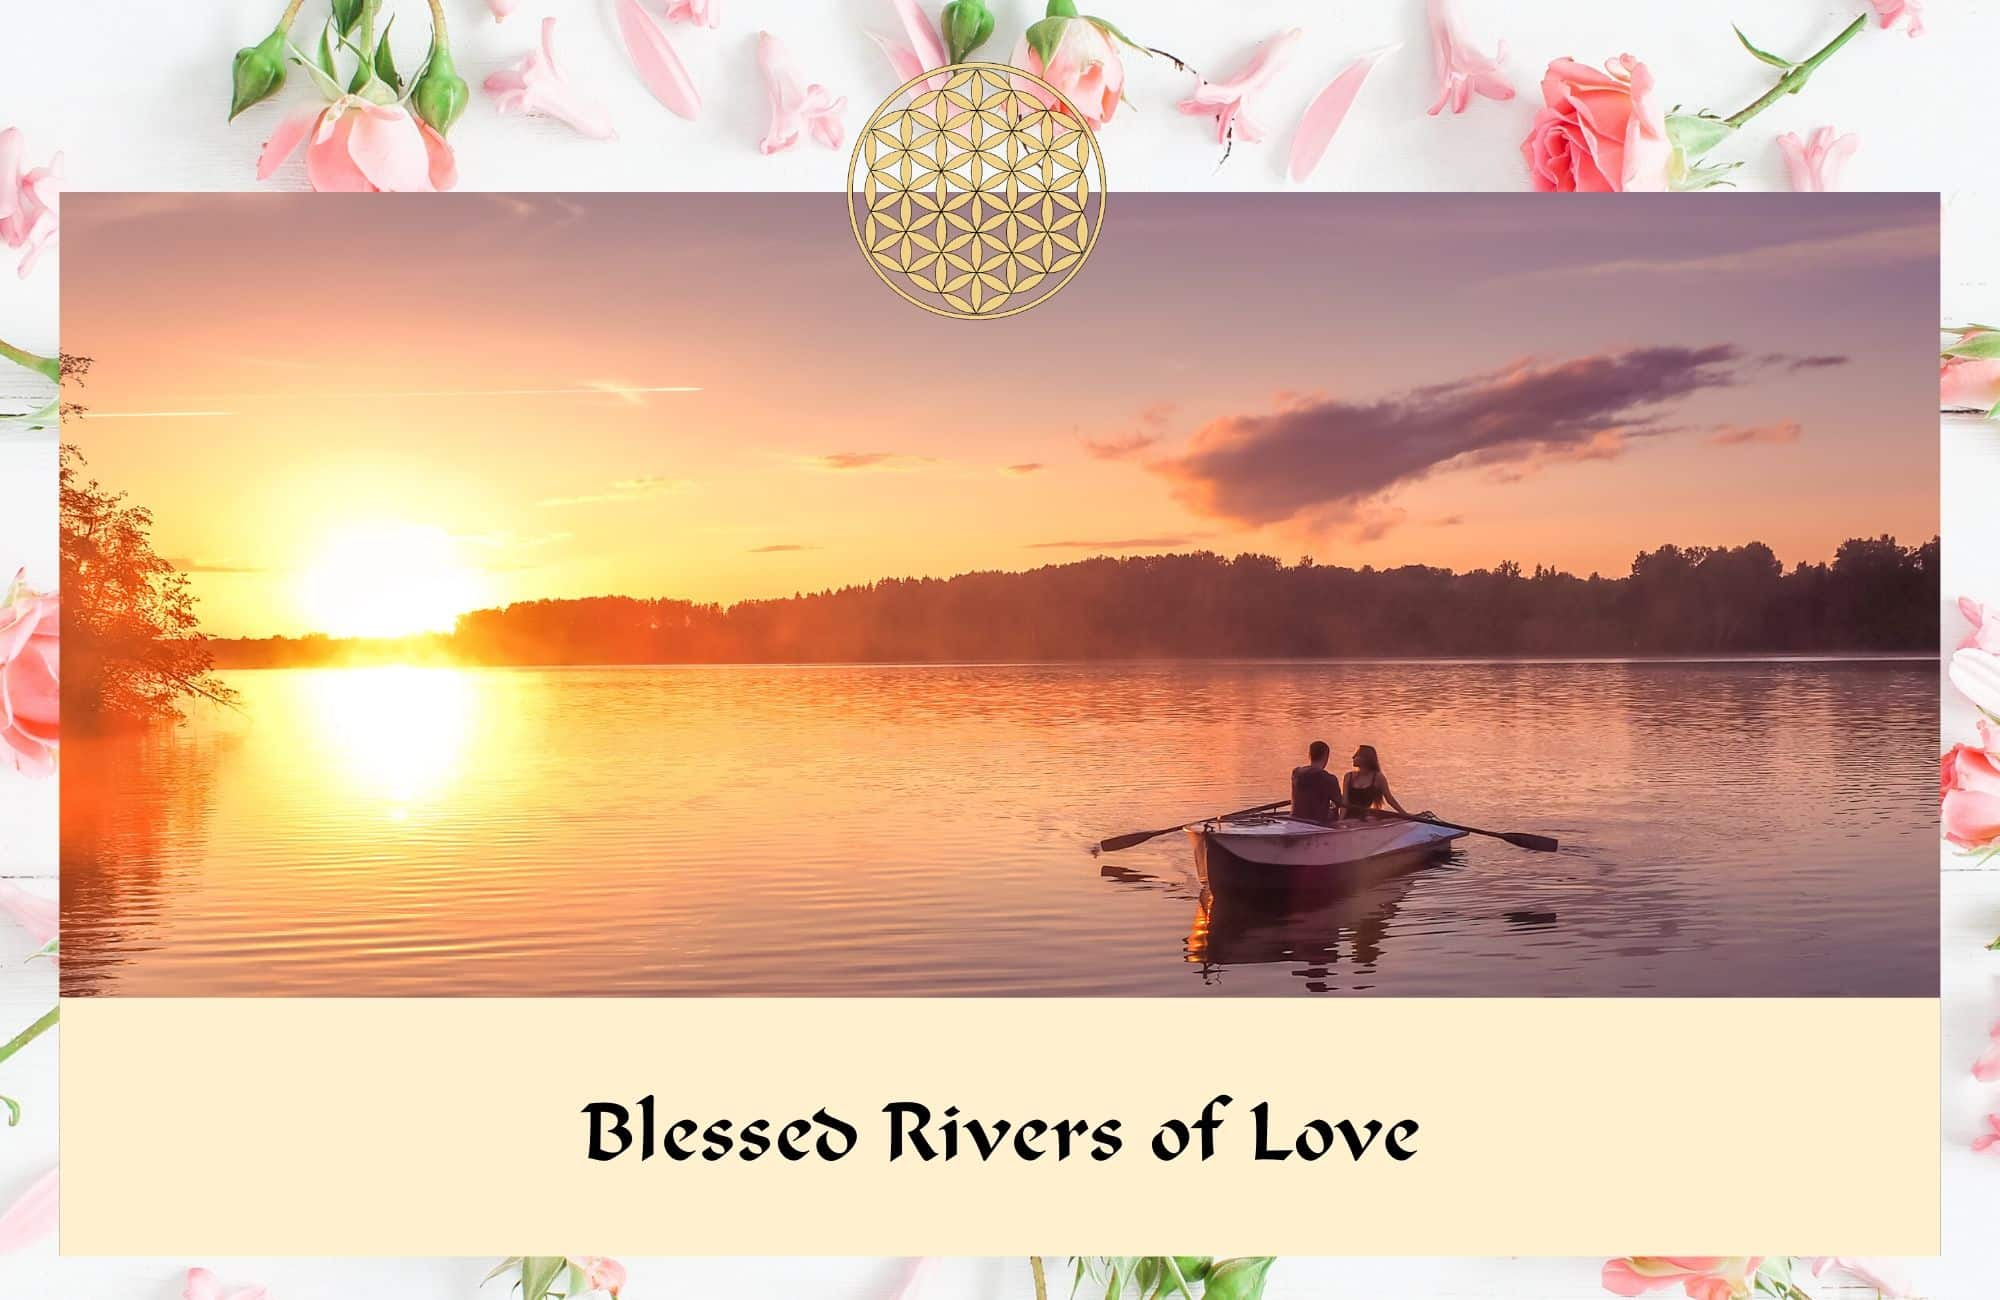 Blessed rivers of love - Flower Essences & Remedies - Flowers for Healing